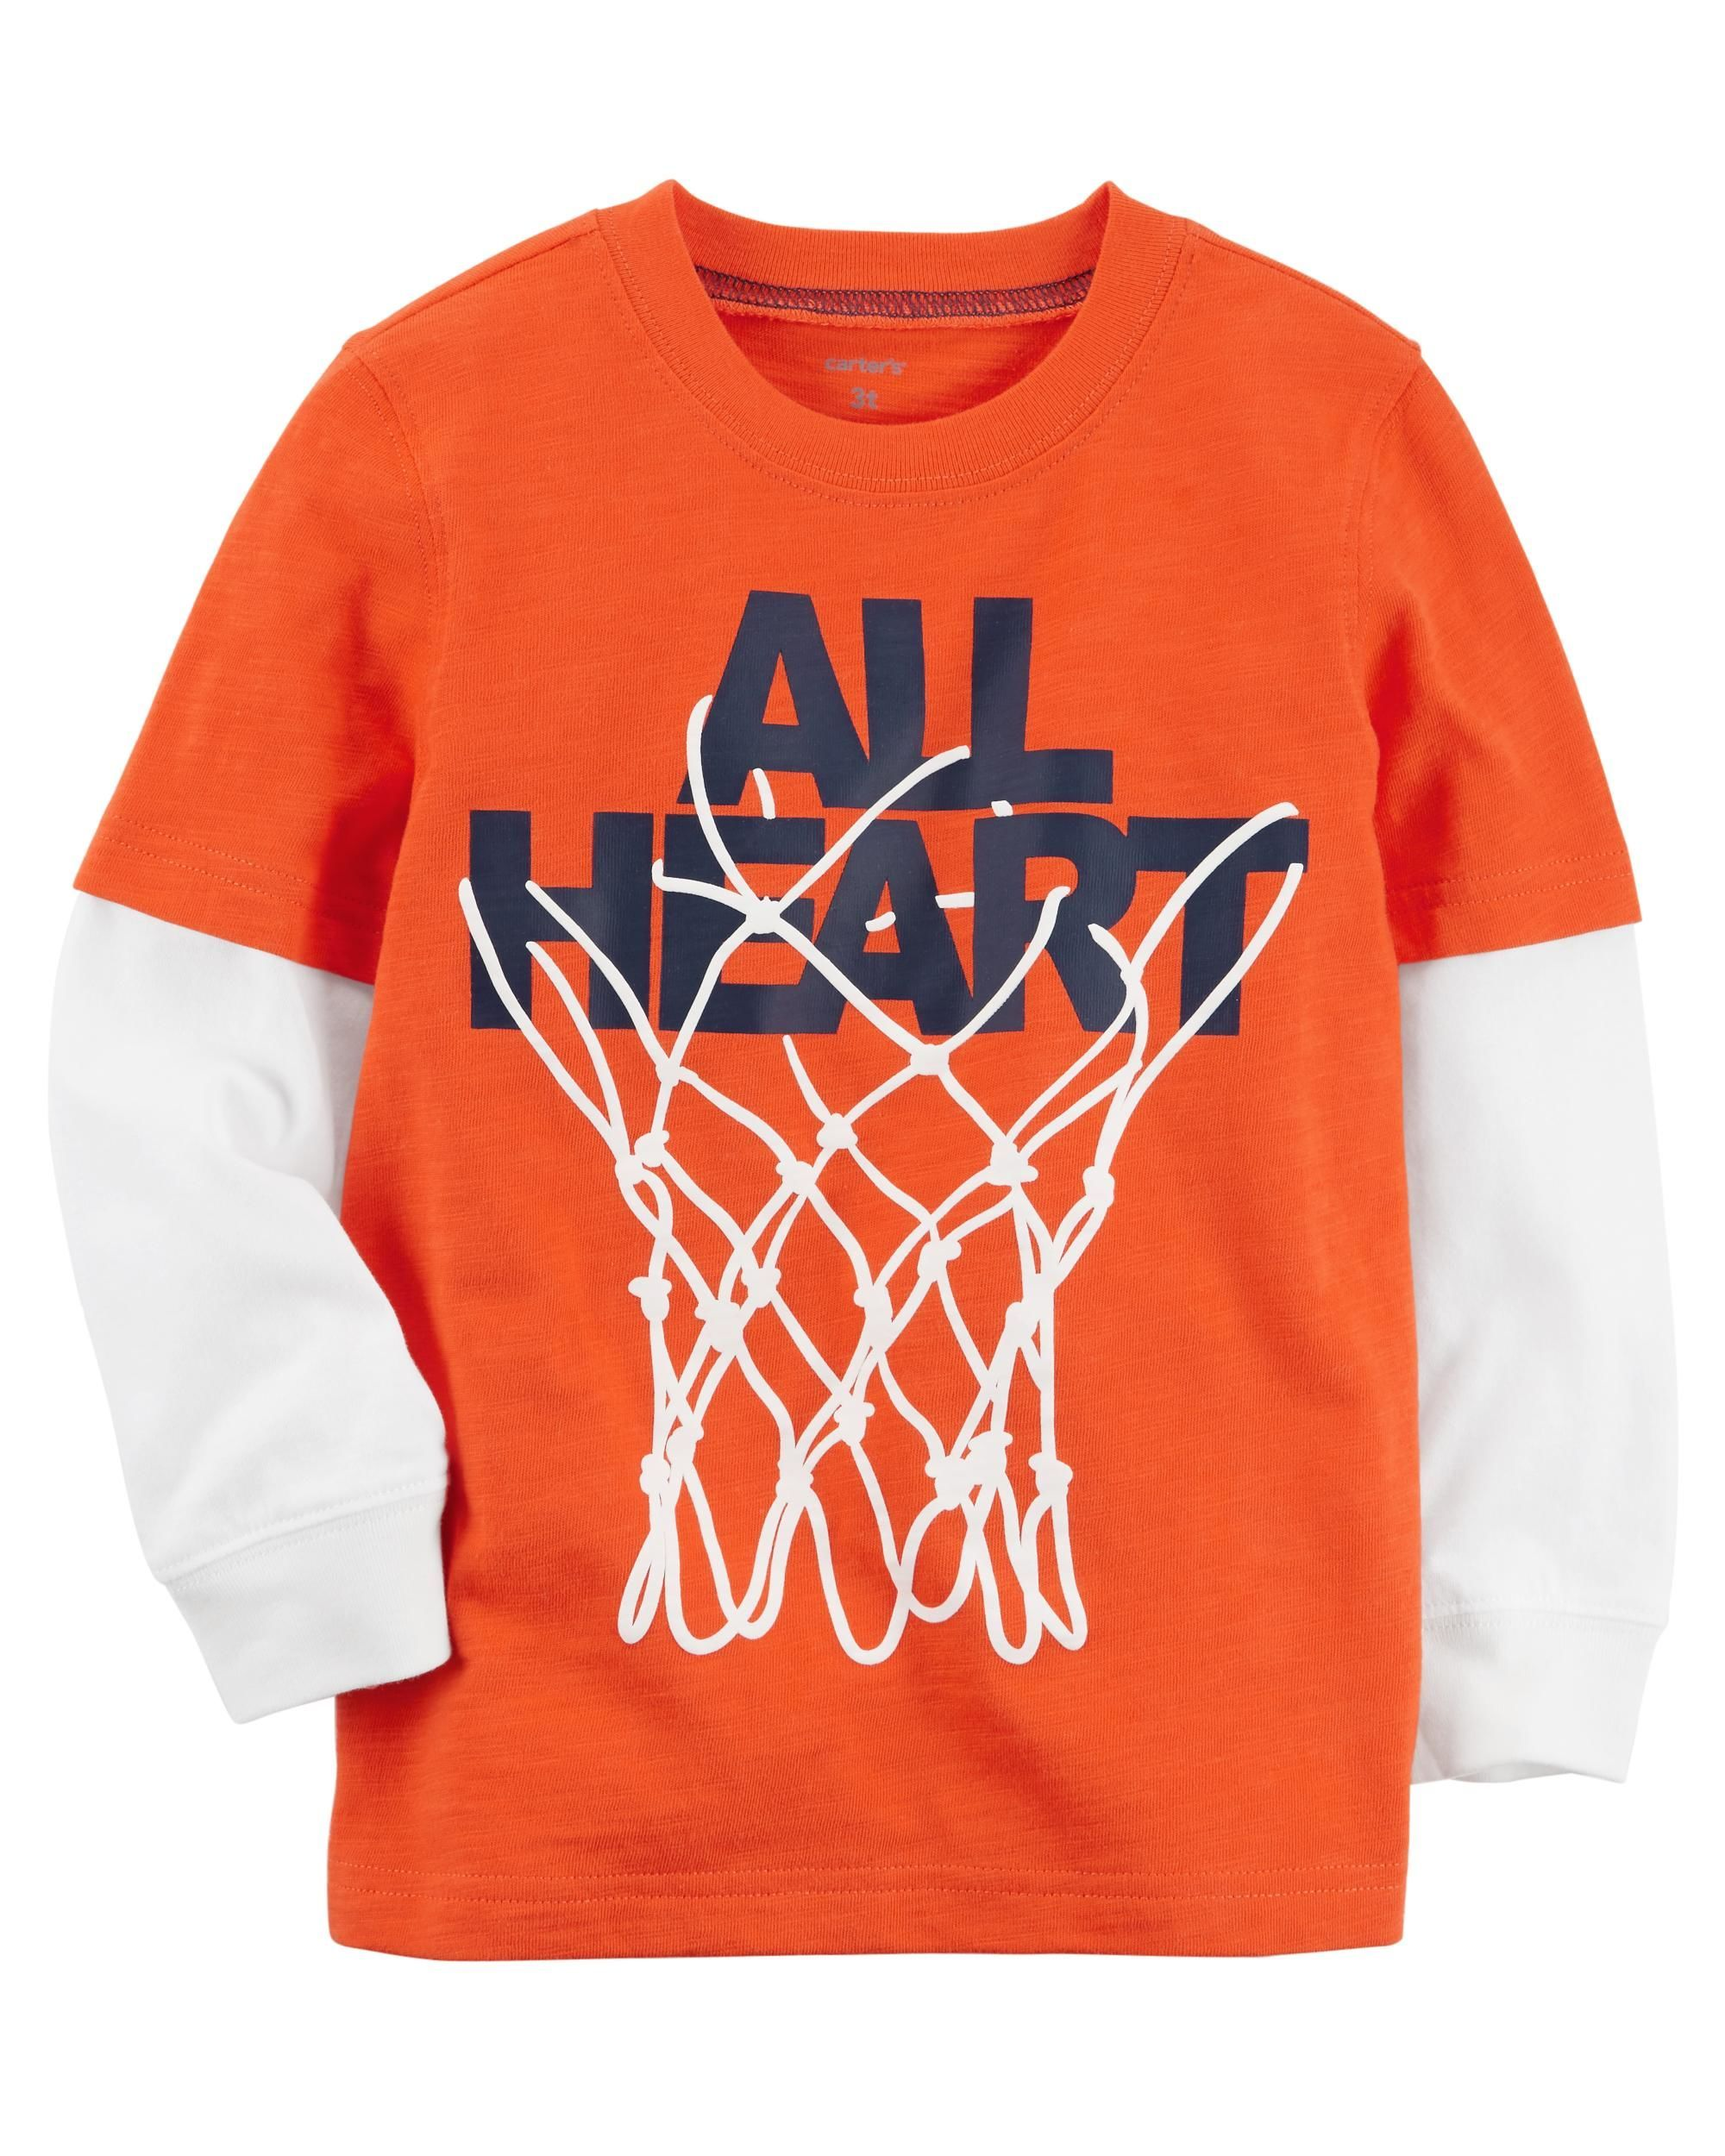 Toddler Boy Basketball Layered Look Jersey Tee